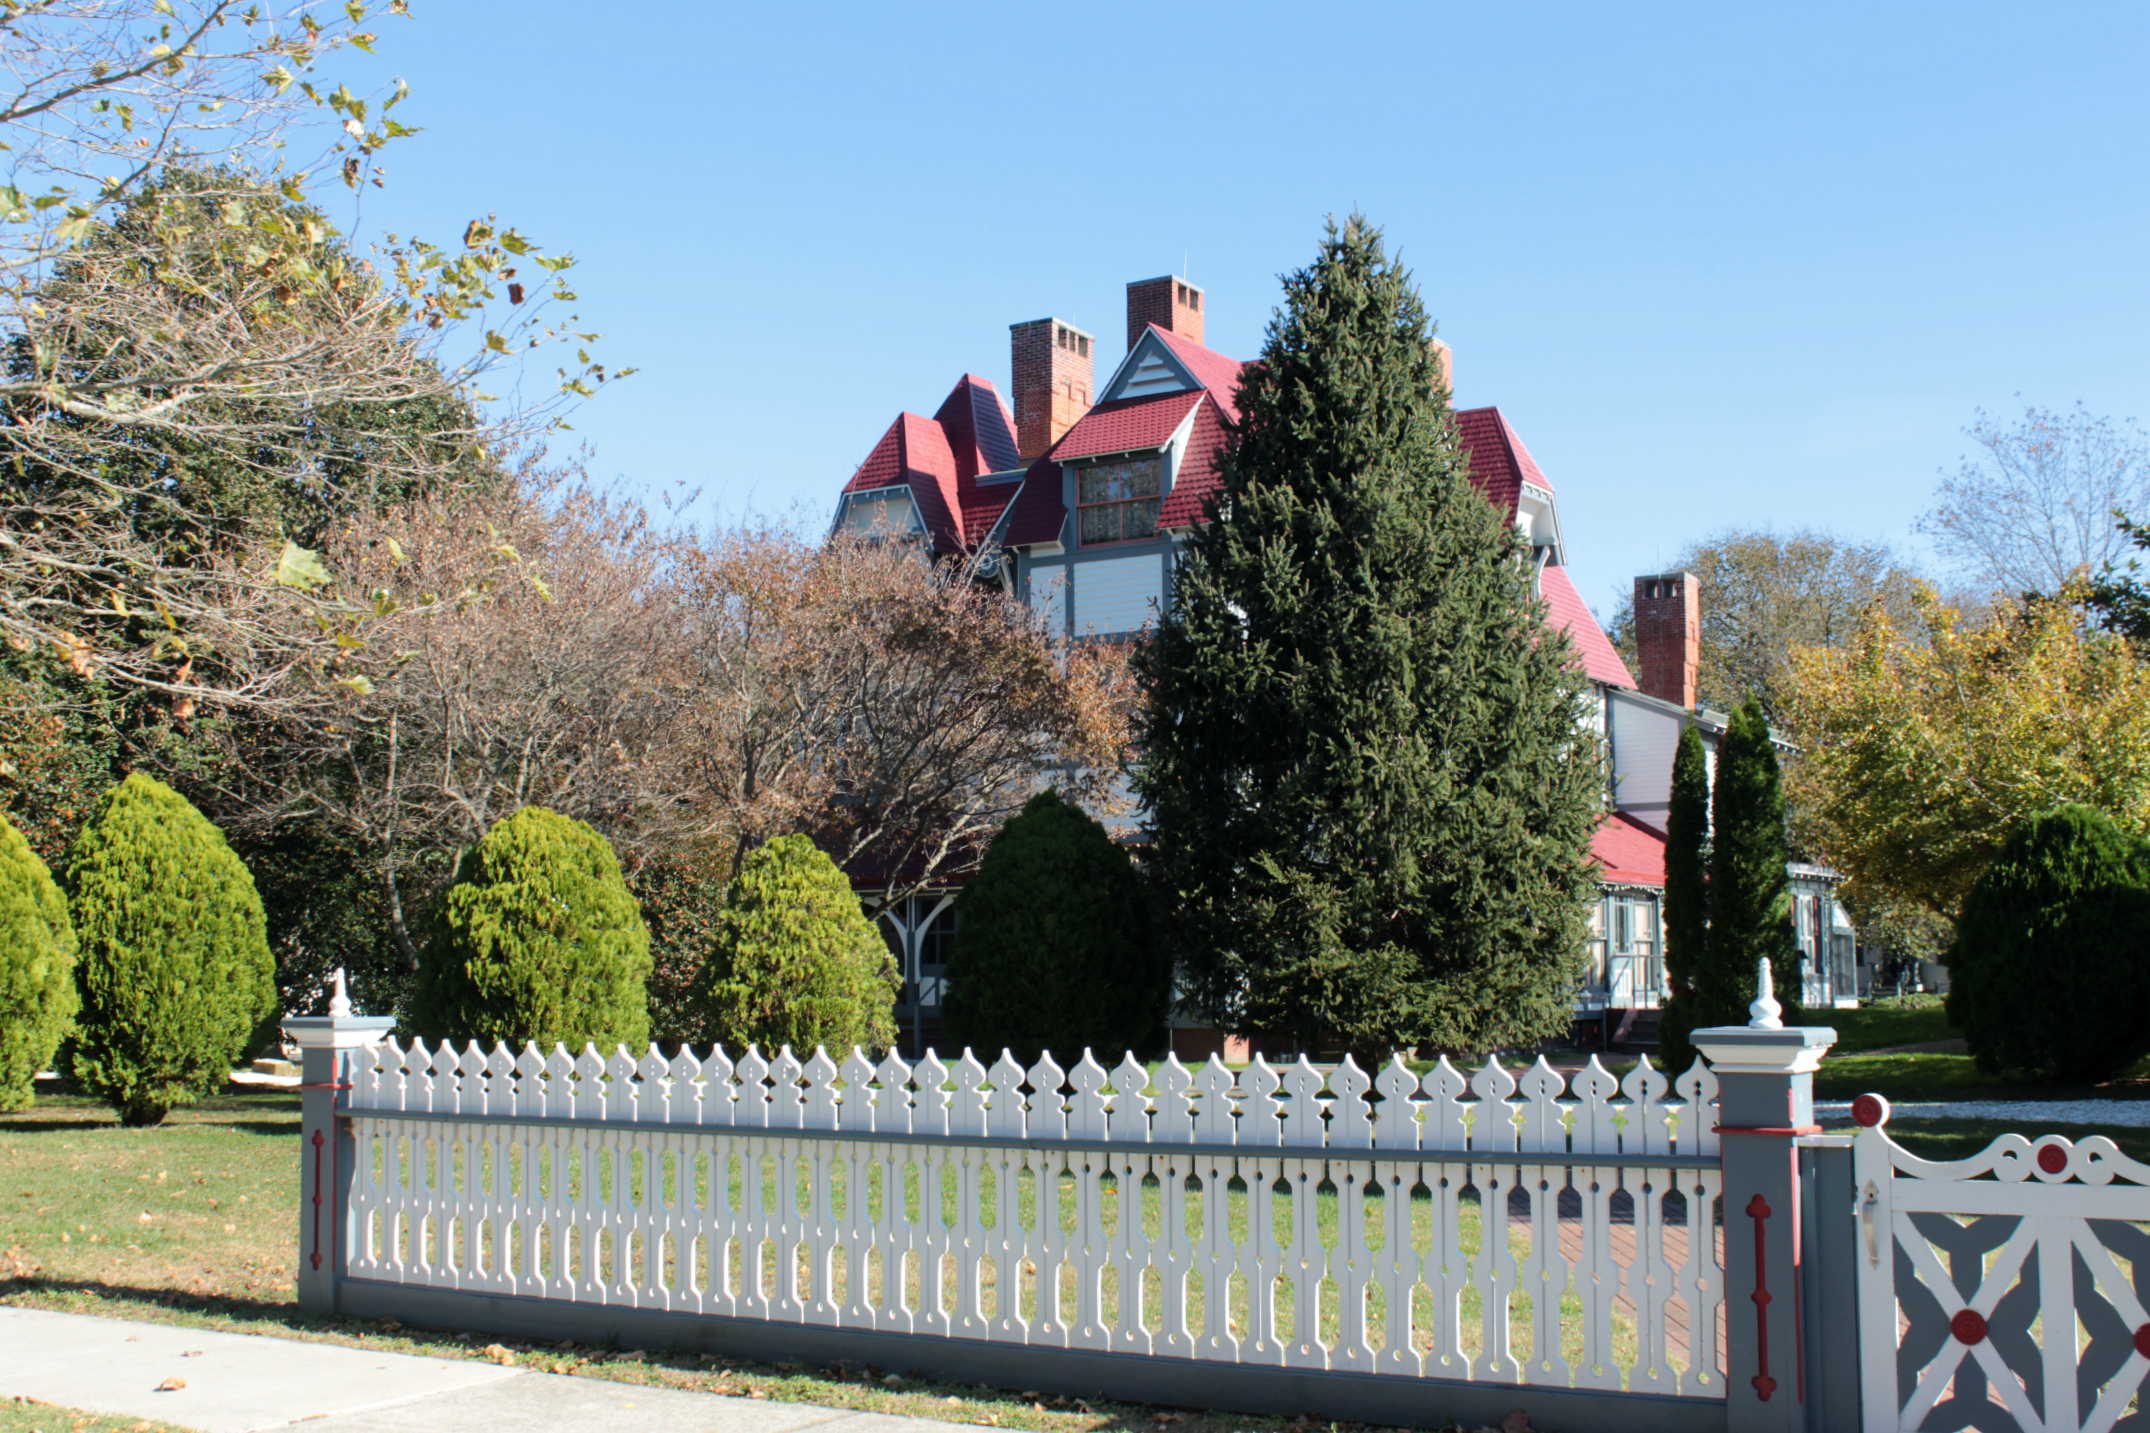 Emlen Physick Estate in Cape May, surrounded by fence and trees.